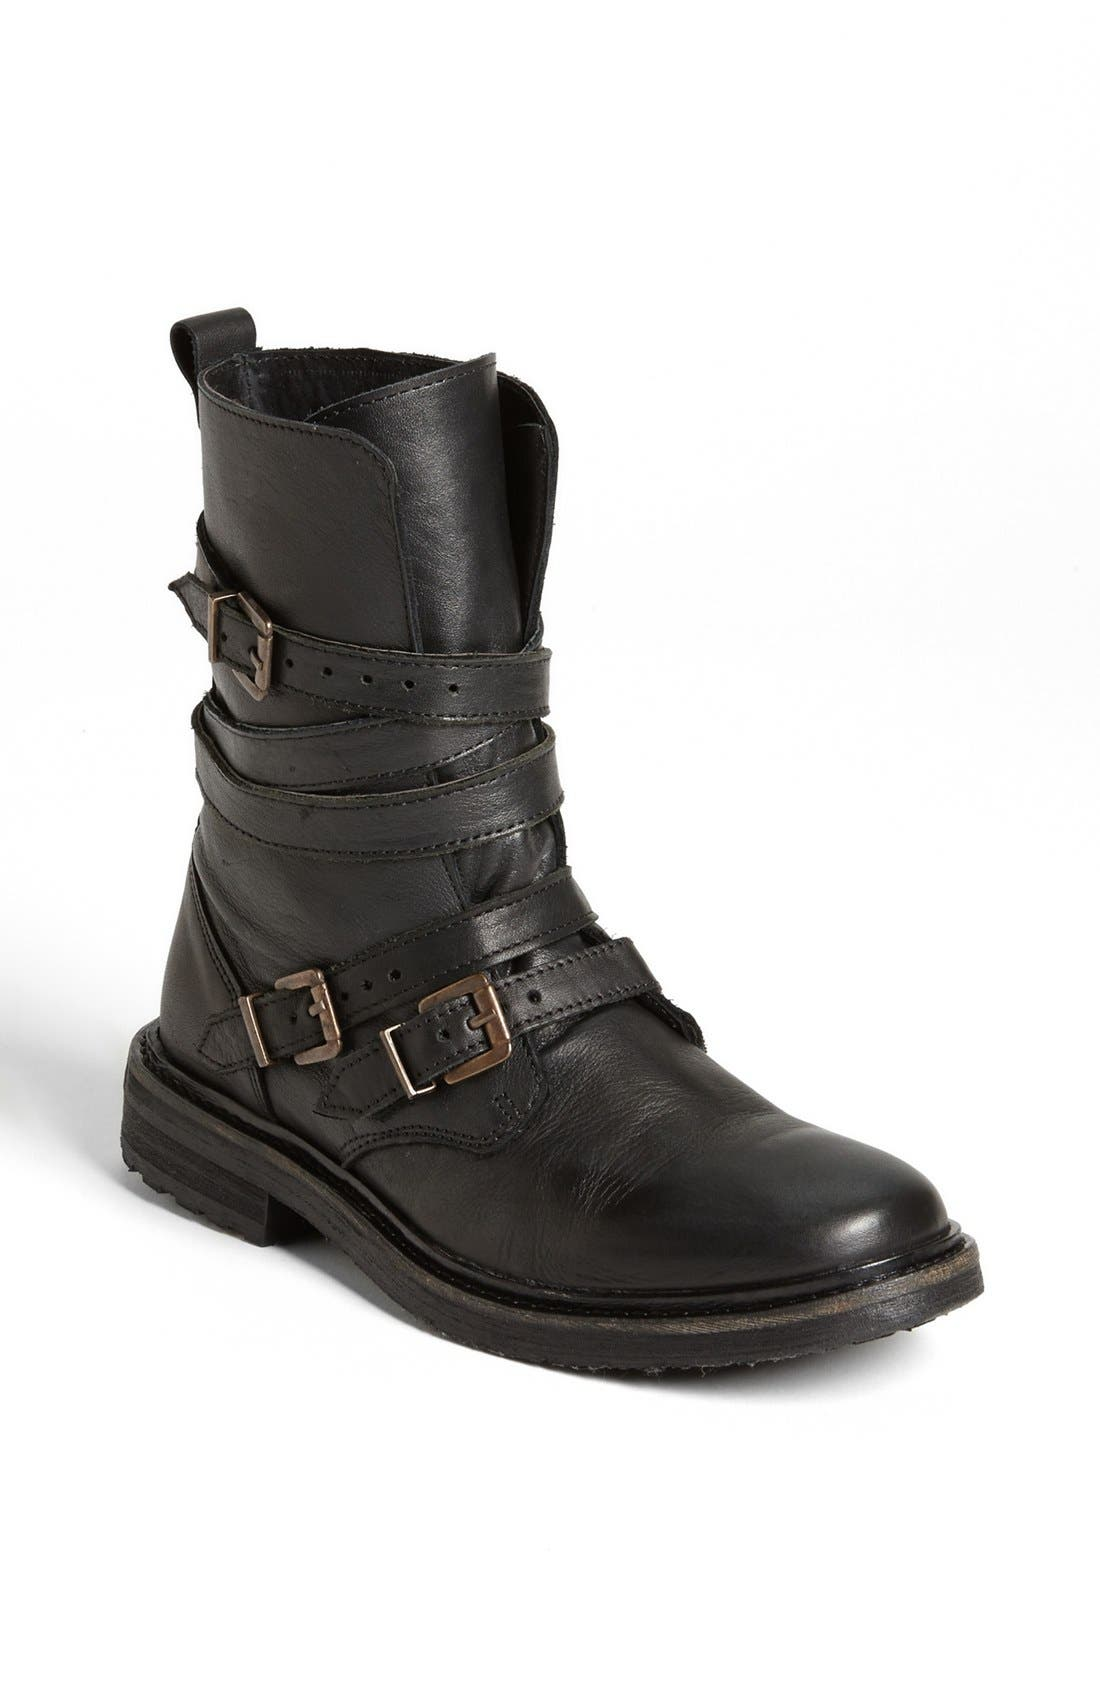 Alternate Image 1 Selected - Topshop 'Arrested' Boot